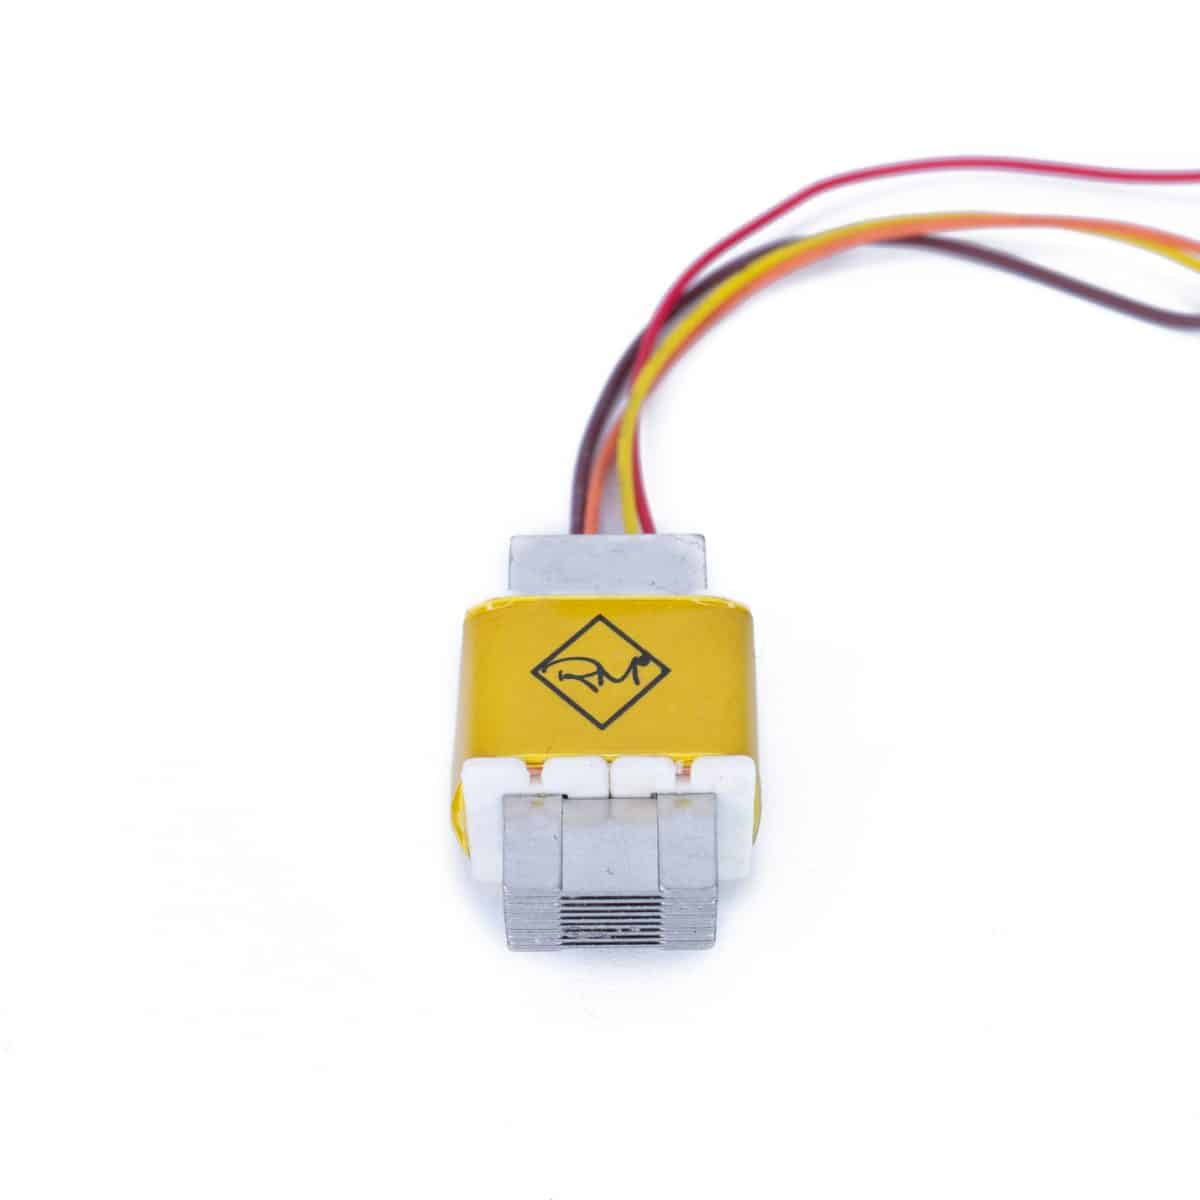 T87 microphone output transformer front